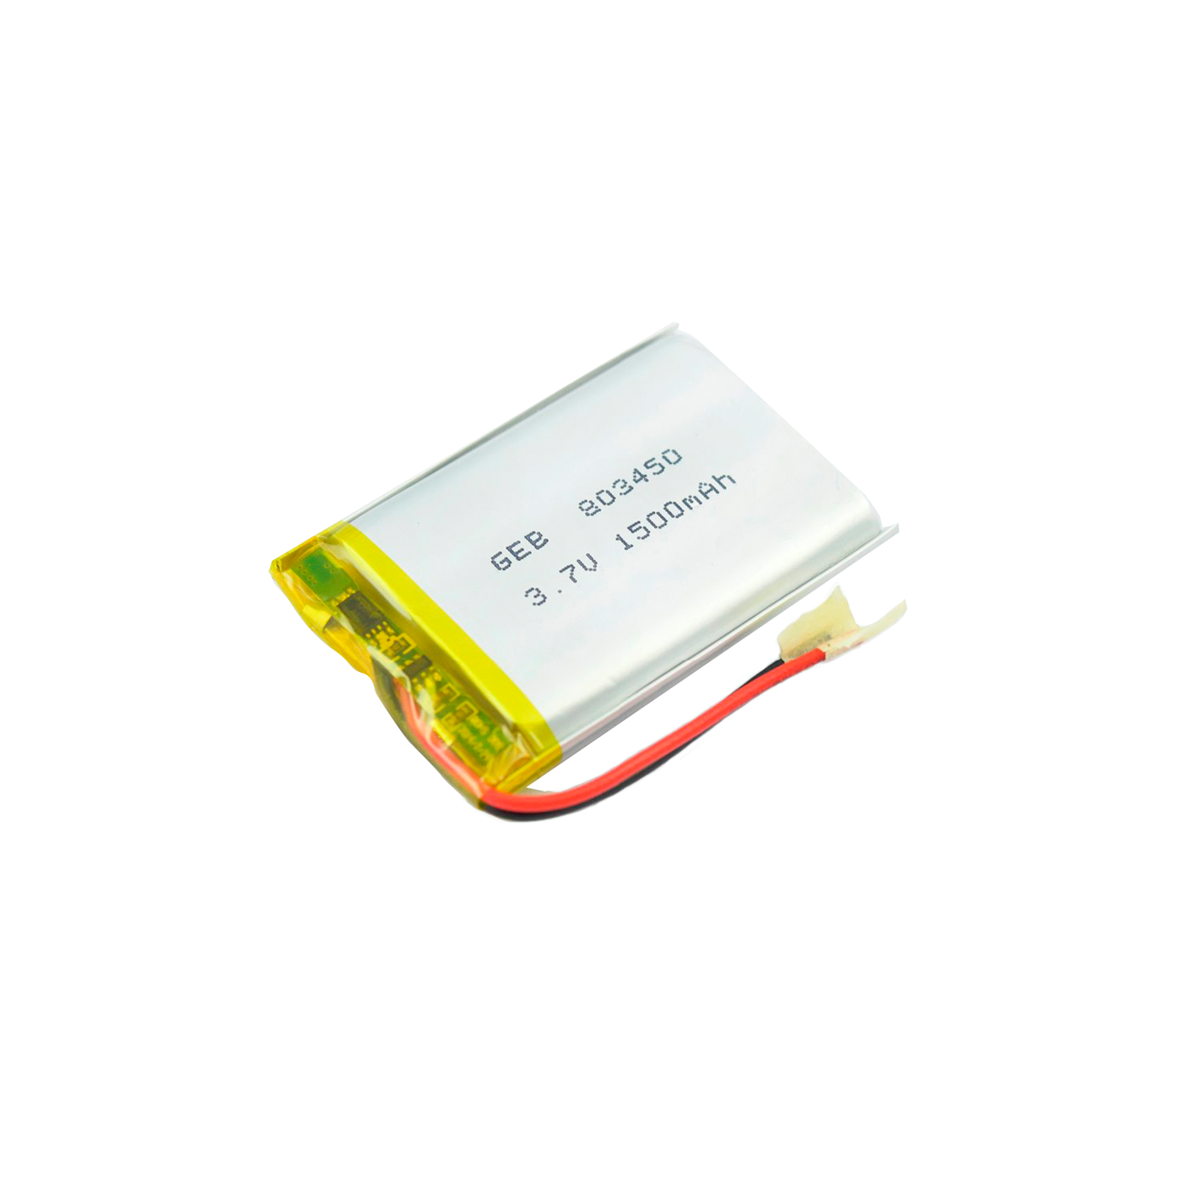 china factory direct sale 802035 3.7v 500mah 1.85wh lipo battery for battery pack